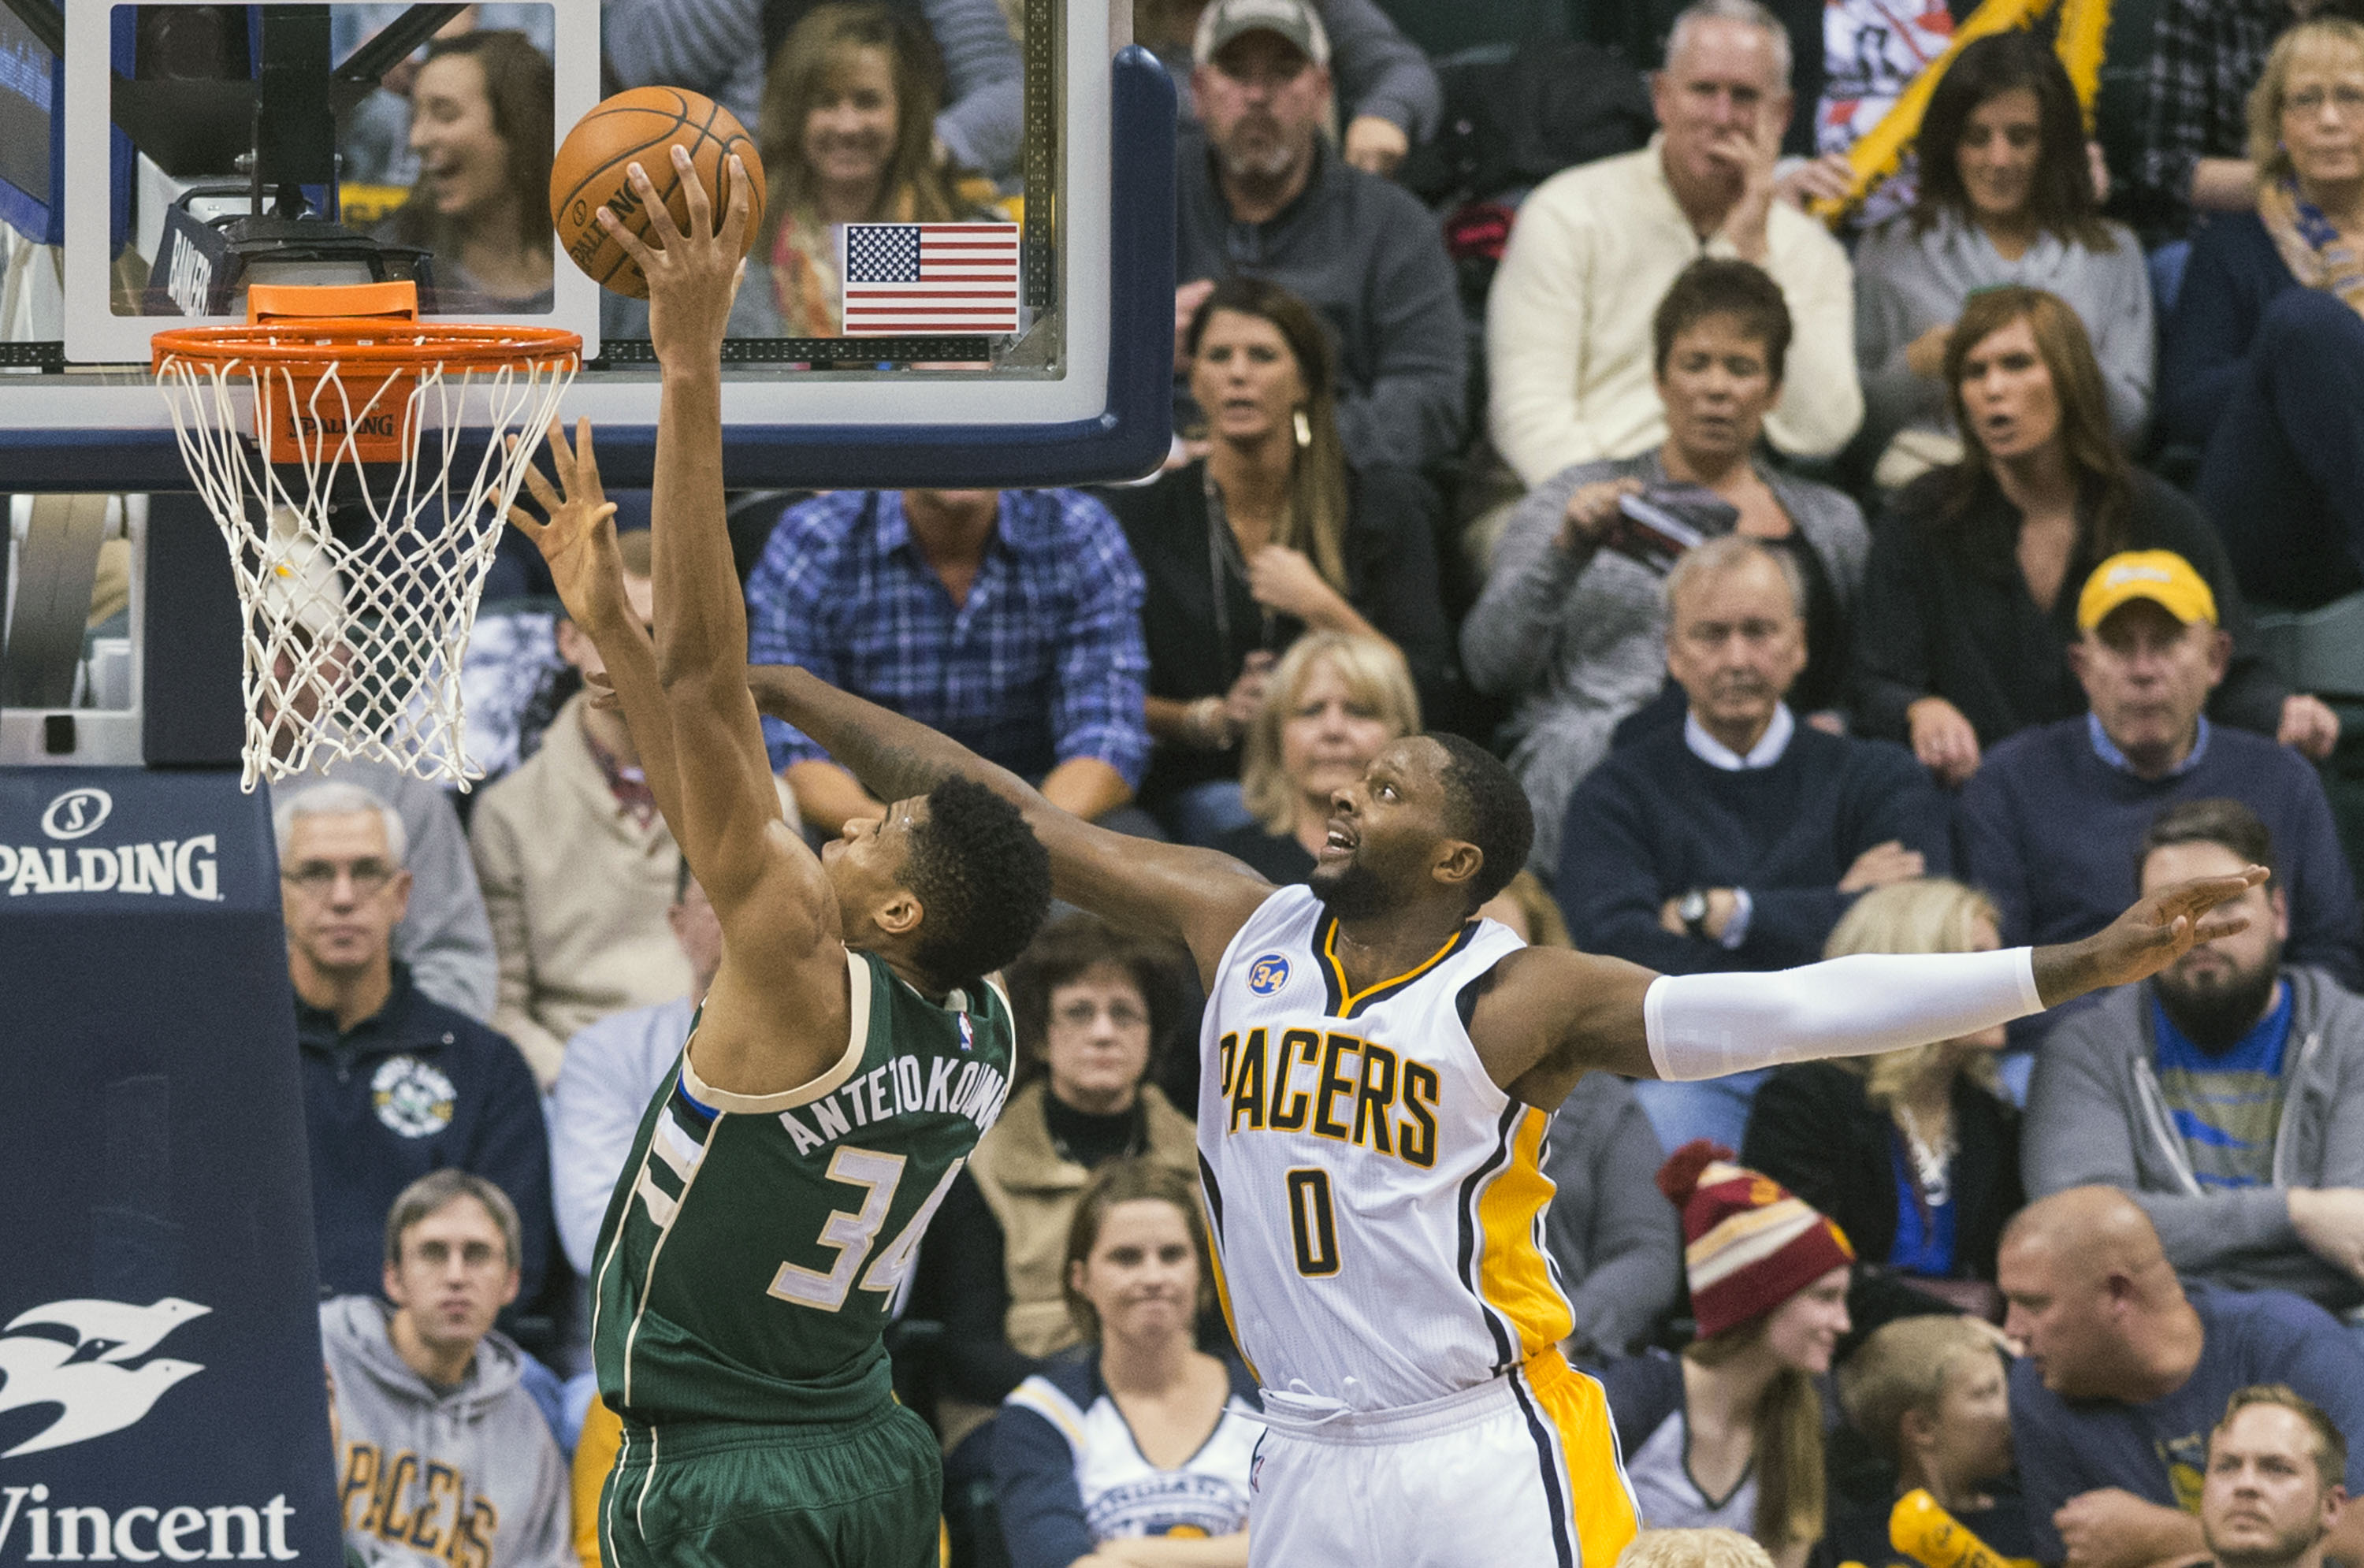 Milwaukee Bucks forward Giannis Antetokounmpo (34) beats Indiana Pacers forward C.J. Miles (0) to the basket to score during the second half of an NBA basketball game, Saturday, Nov. 21, 2015, in Indianapolis. The Pacers won 123-86. (AP Photo/Doug McSchoo